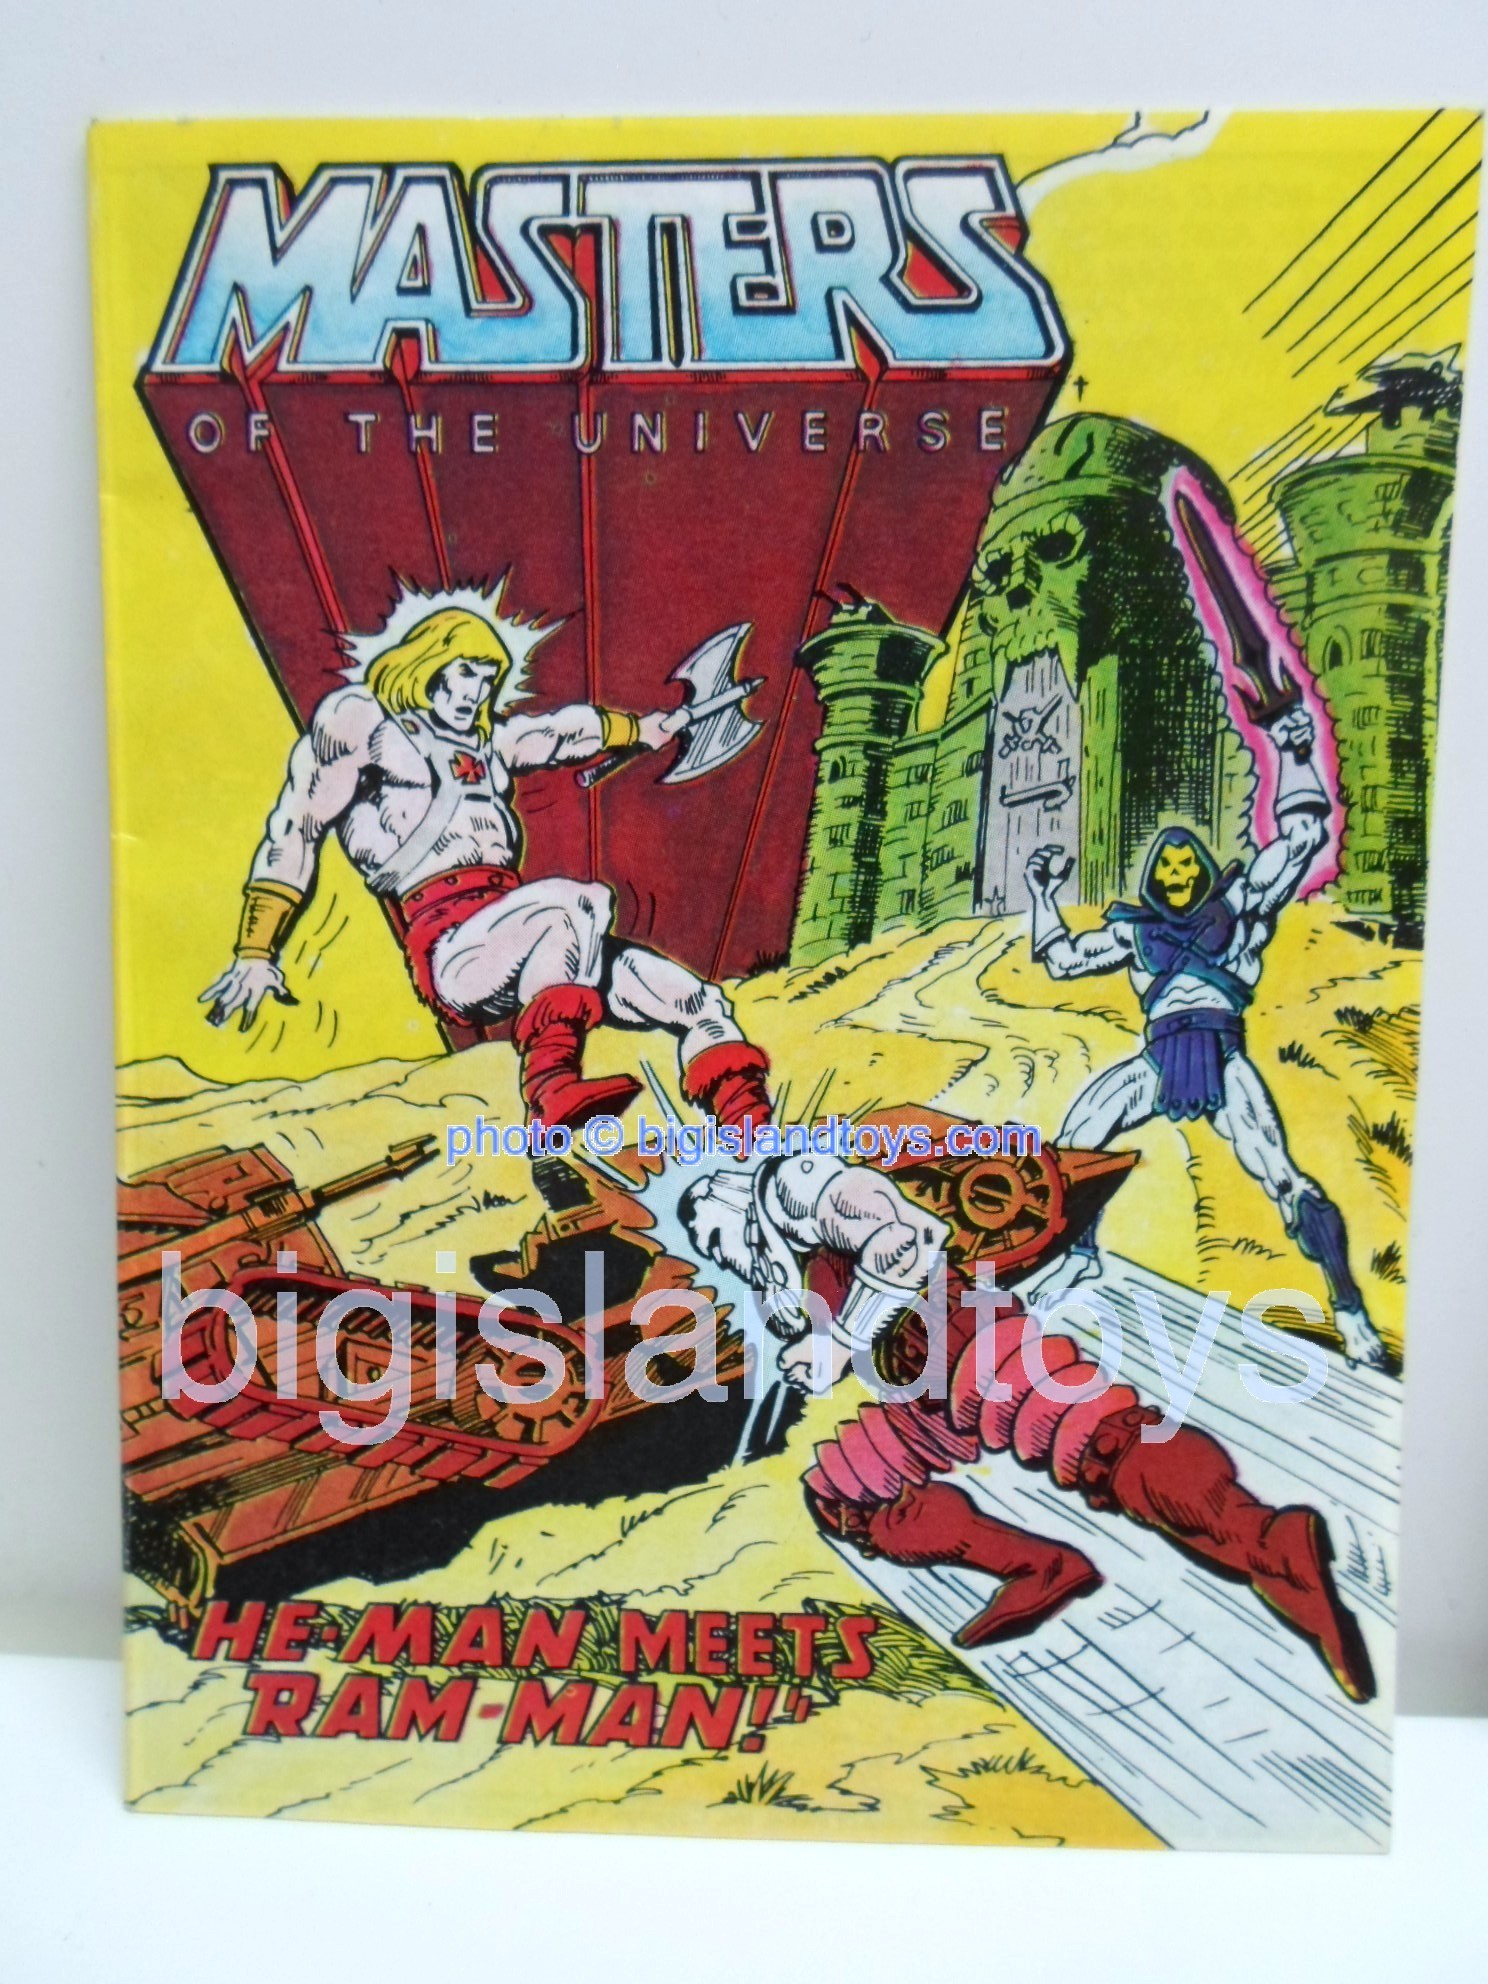 Masters of the Universe Mini Comics   He-Man Meets Ram-Man!